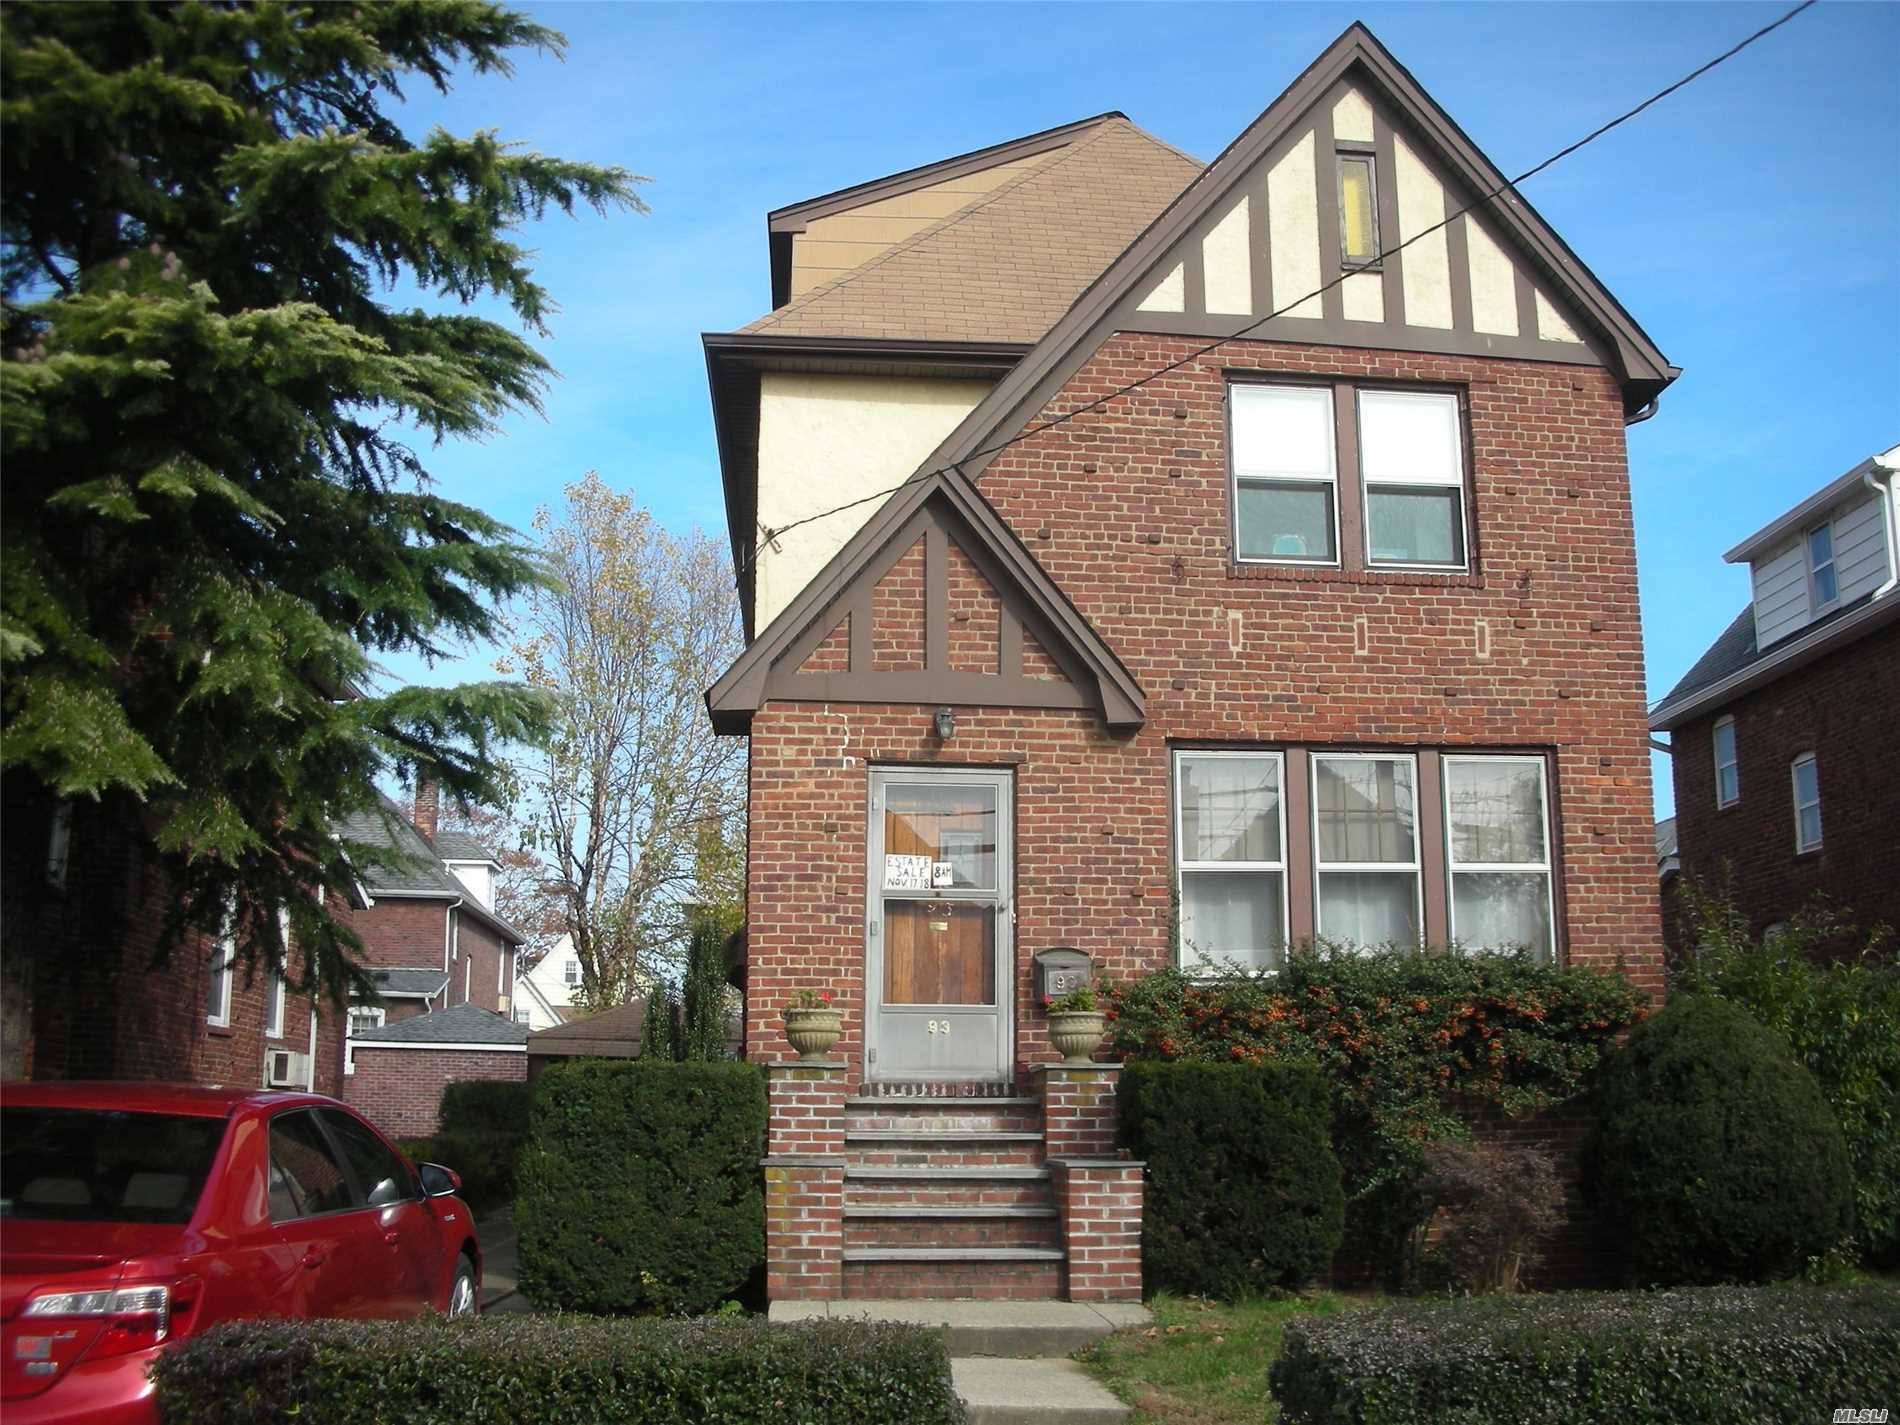 Spacious Brick Tudor Colonial In Yorkshire, All Formal Rooms, Over 2, 000 Sf, 4Brs, Dual Staircase From Main To 2nd Floor, Living Room With Fireplace, Open To Den/Sunroom, Oak / Granite Kitchen, Main Bath Has Tub And Shower, 3rd Fl Has Dormer With Huge Bedroom And 5 Windows, Lots Of Stained Glass Windows And Door, New Gas Heating System, Sep. Hot Water Heater, House Being Sold As-Is.